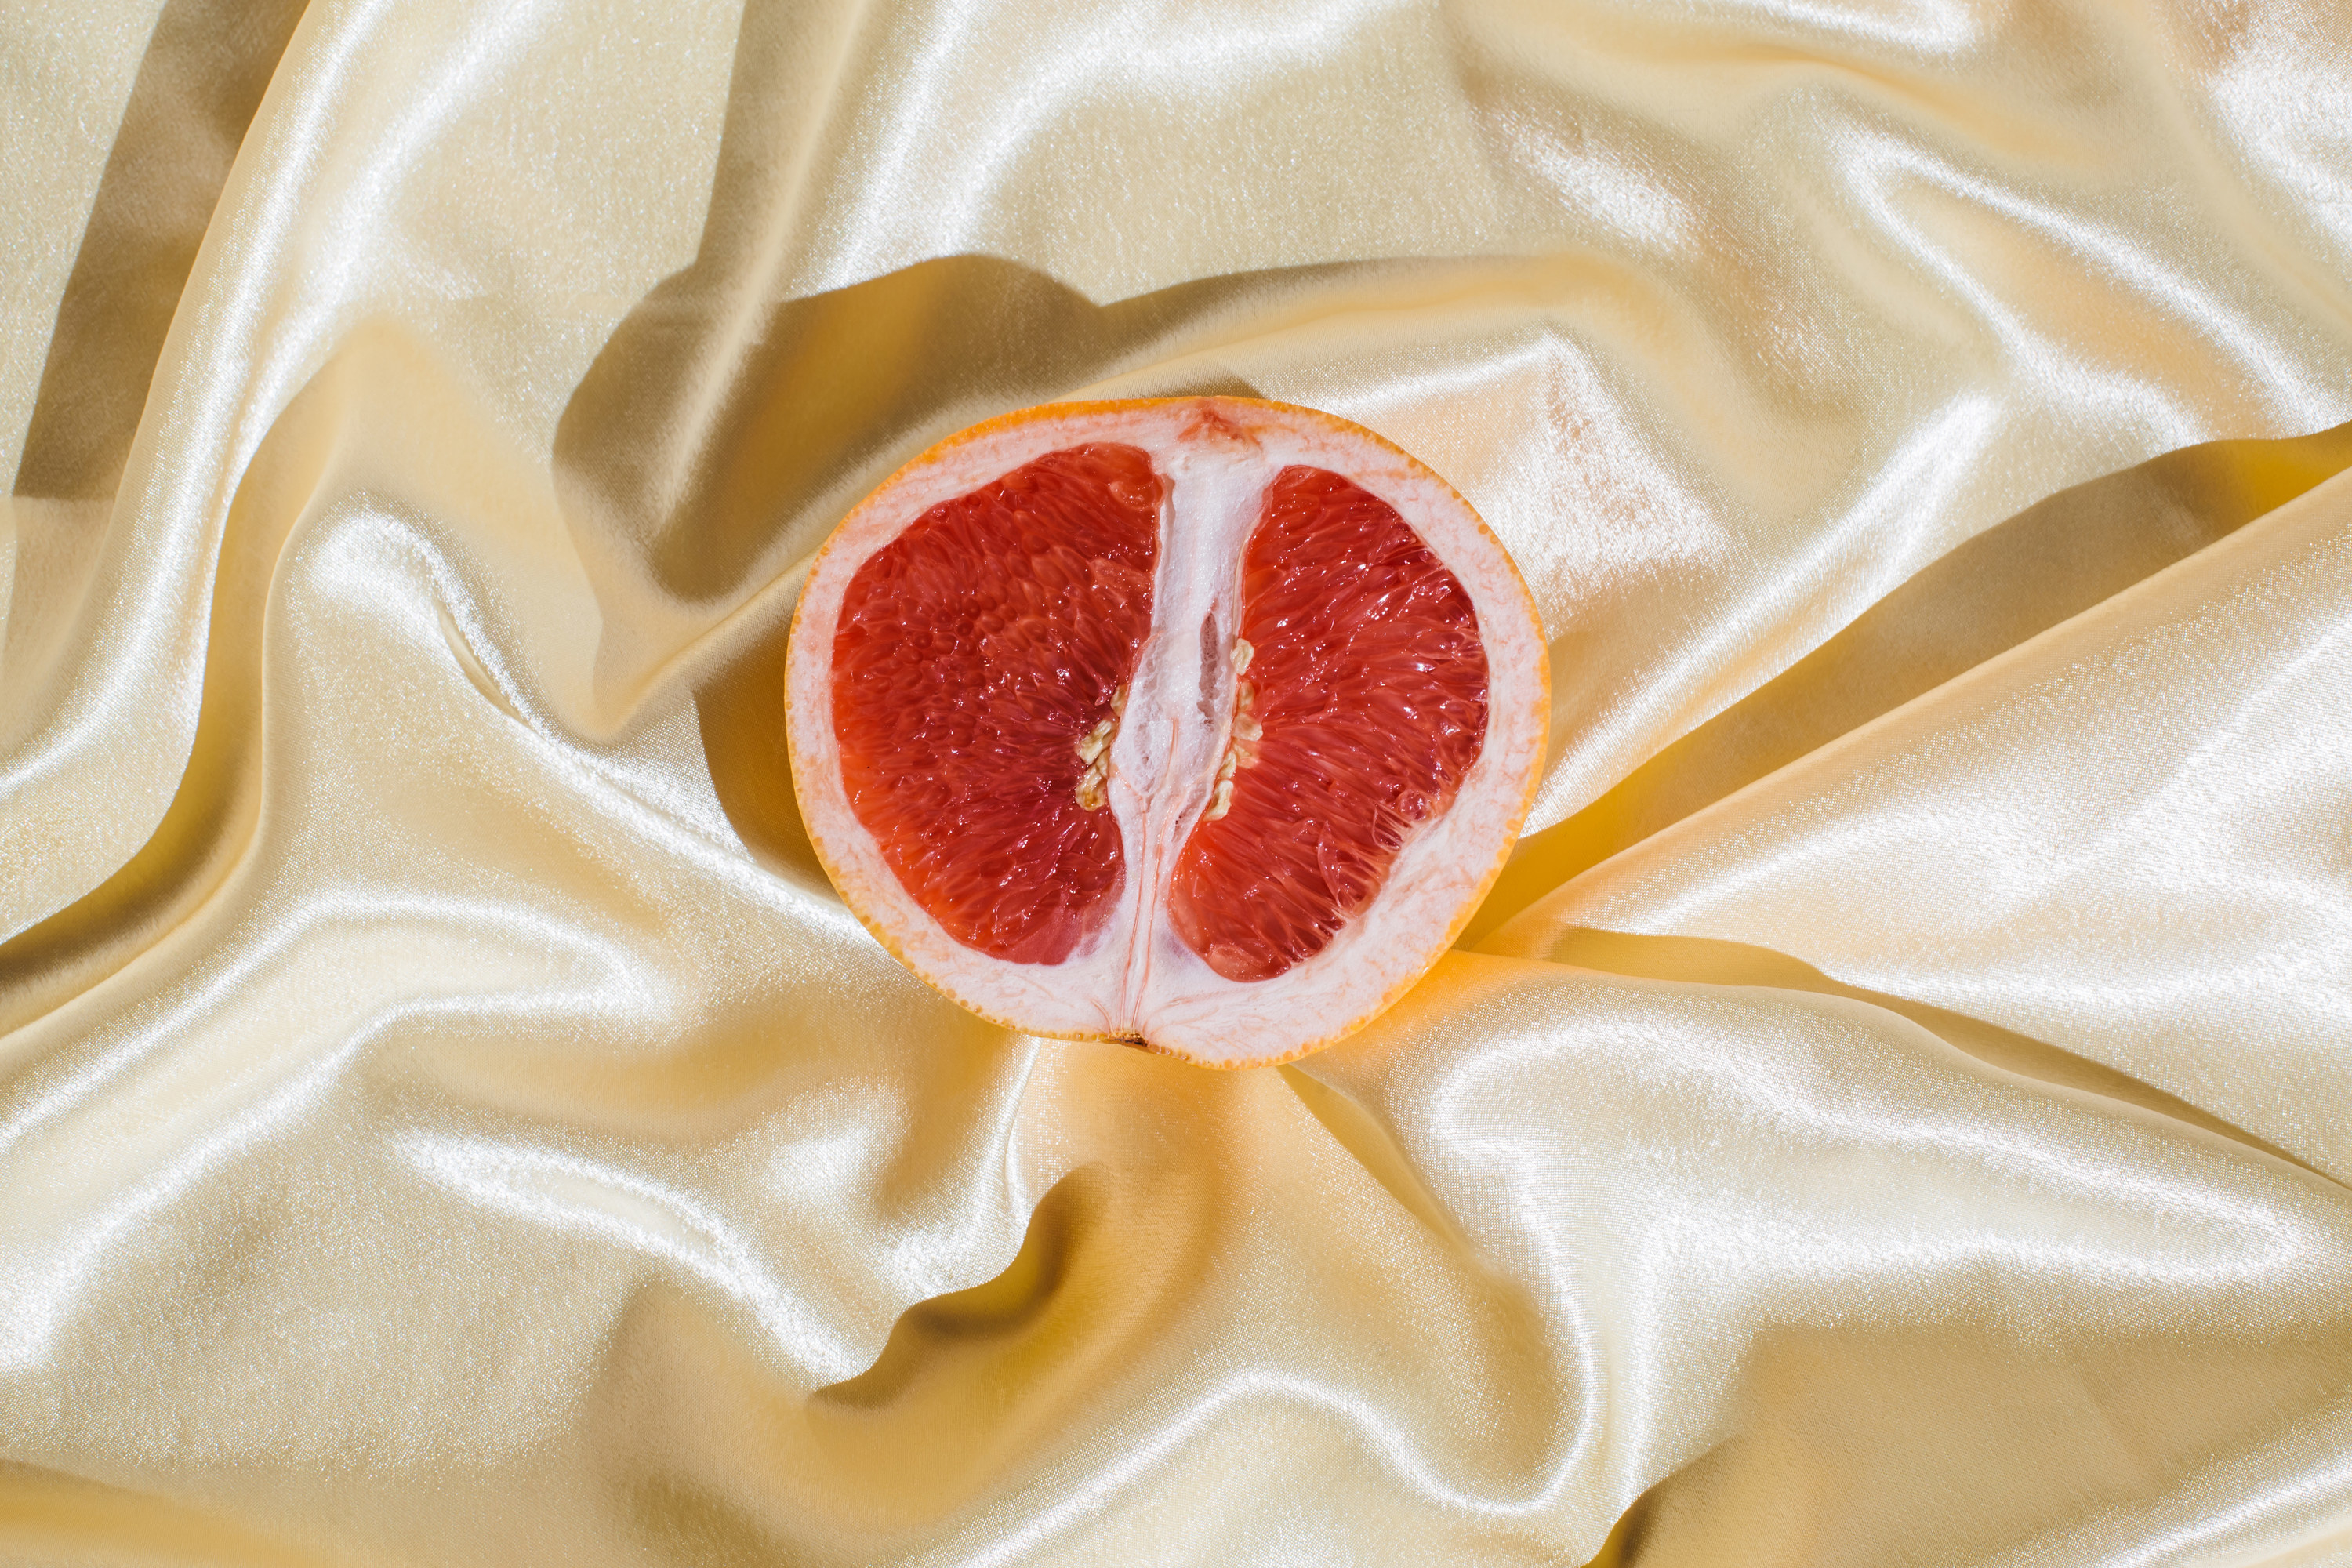 A stock image of a grapefruit on a silky backdrop